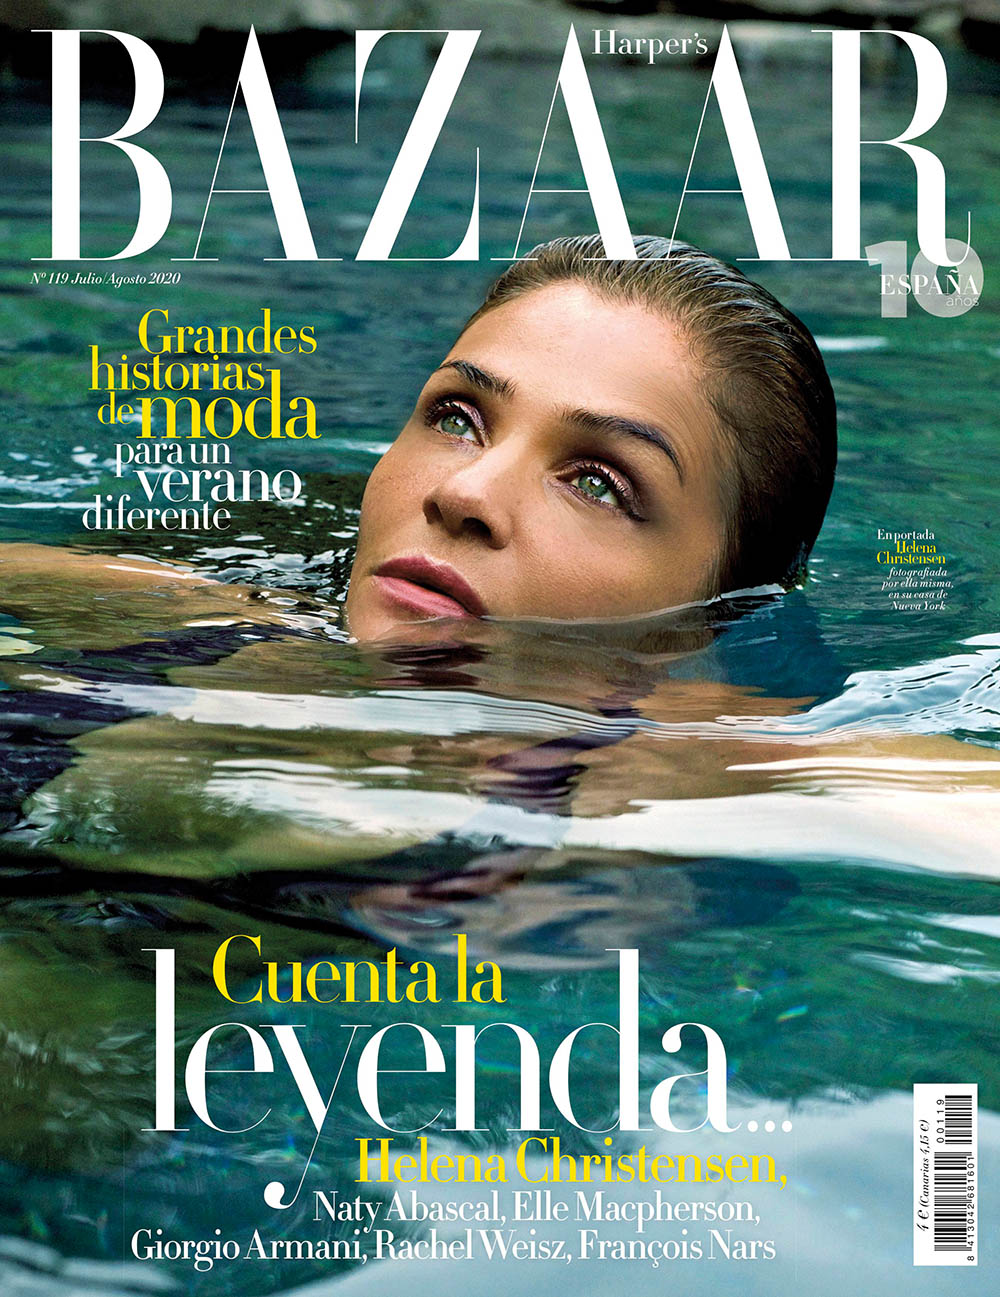 Helena Christensen covers Harper's Bazaar Spain July August 2020 by Helena Christensen